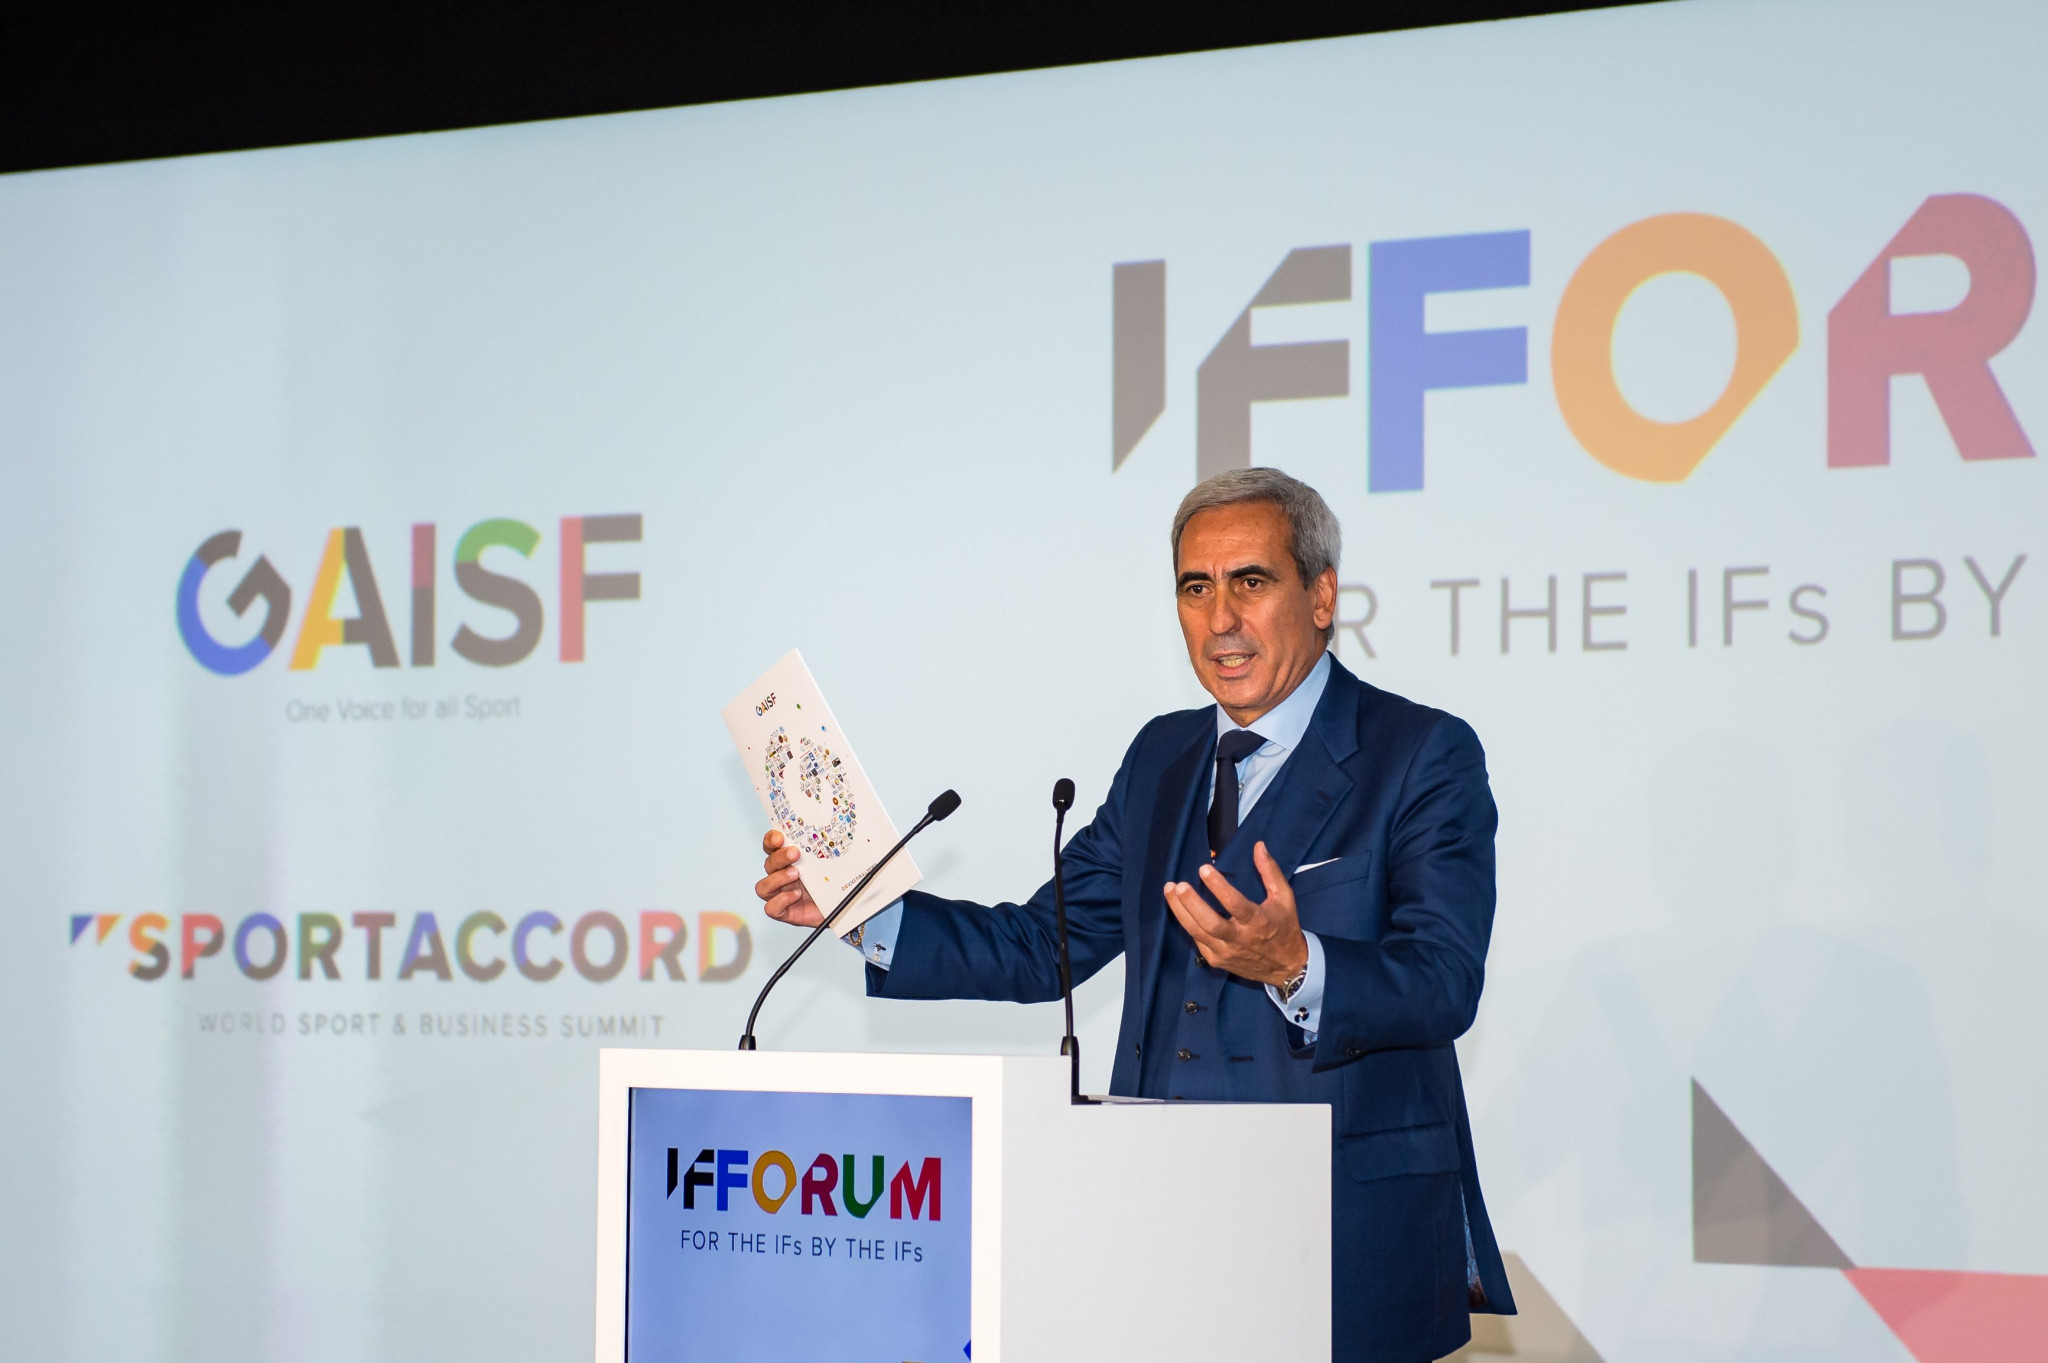 GAISF President Raffaele Chiulli launches busy day at IF Forum